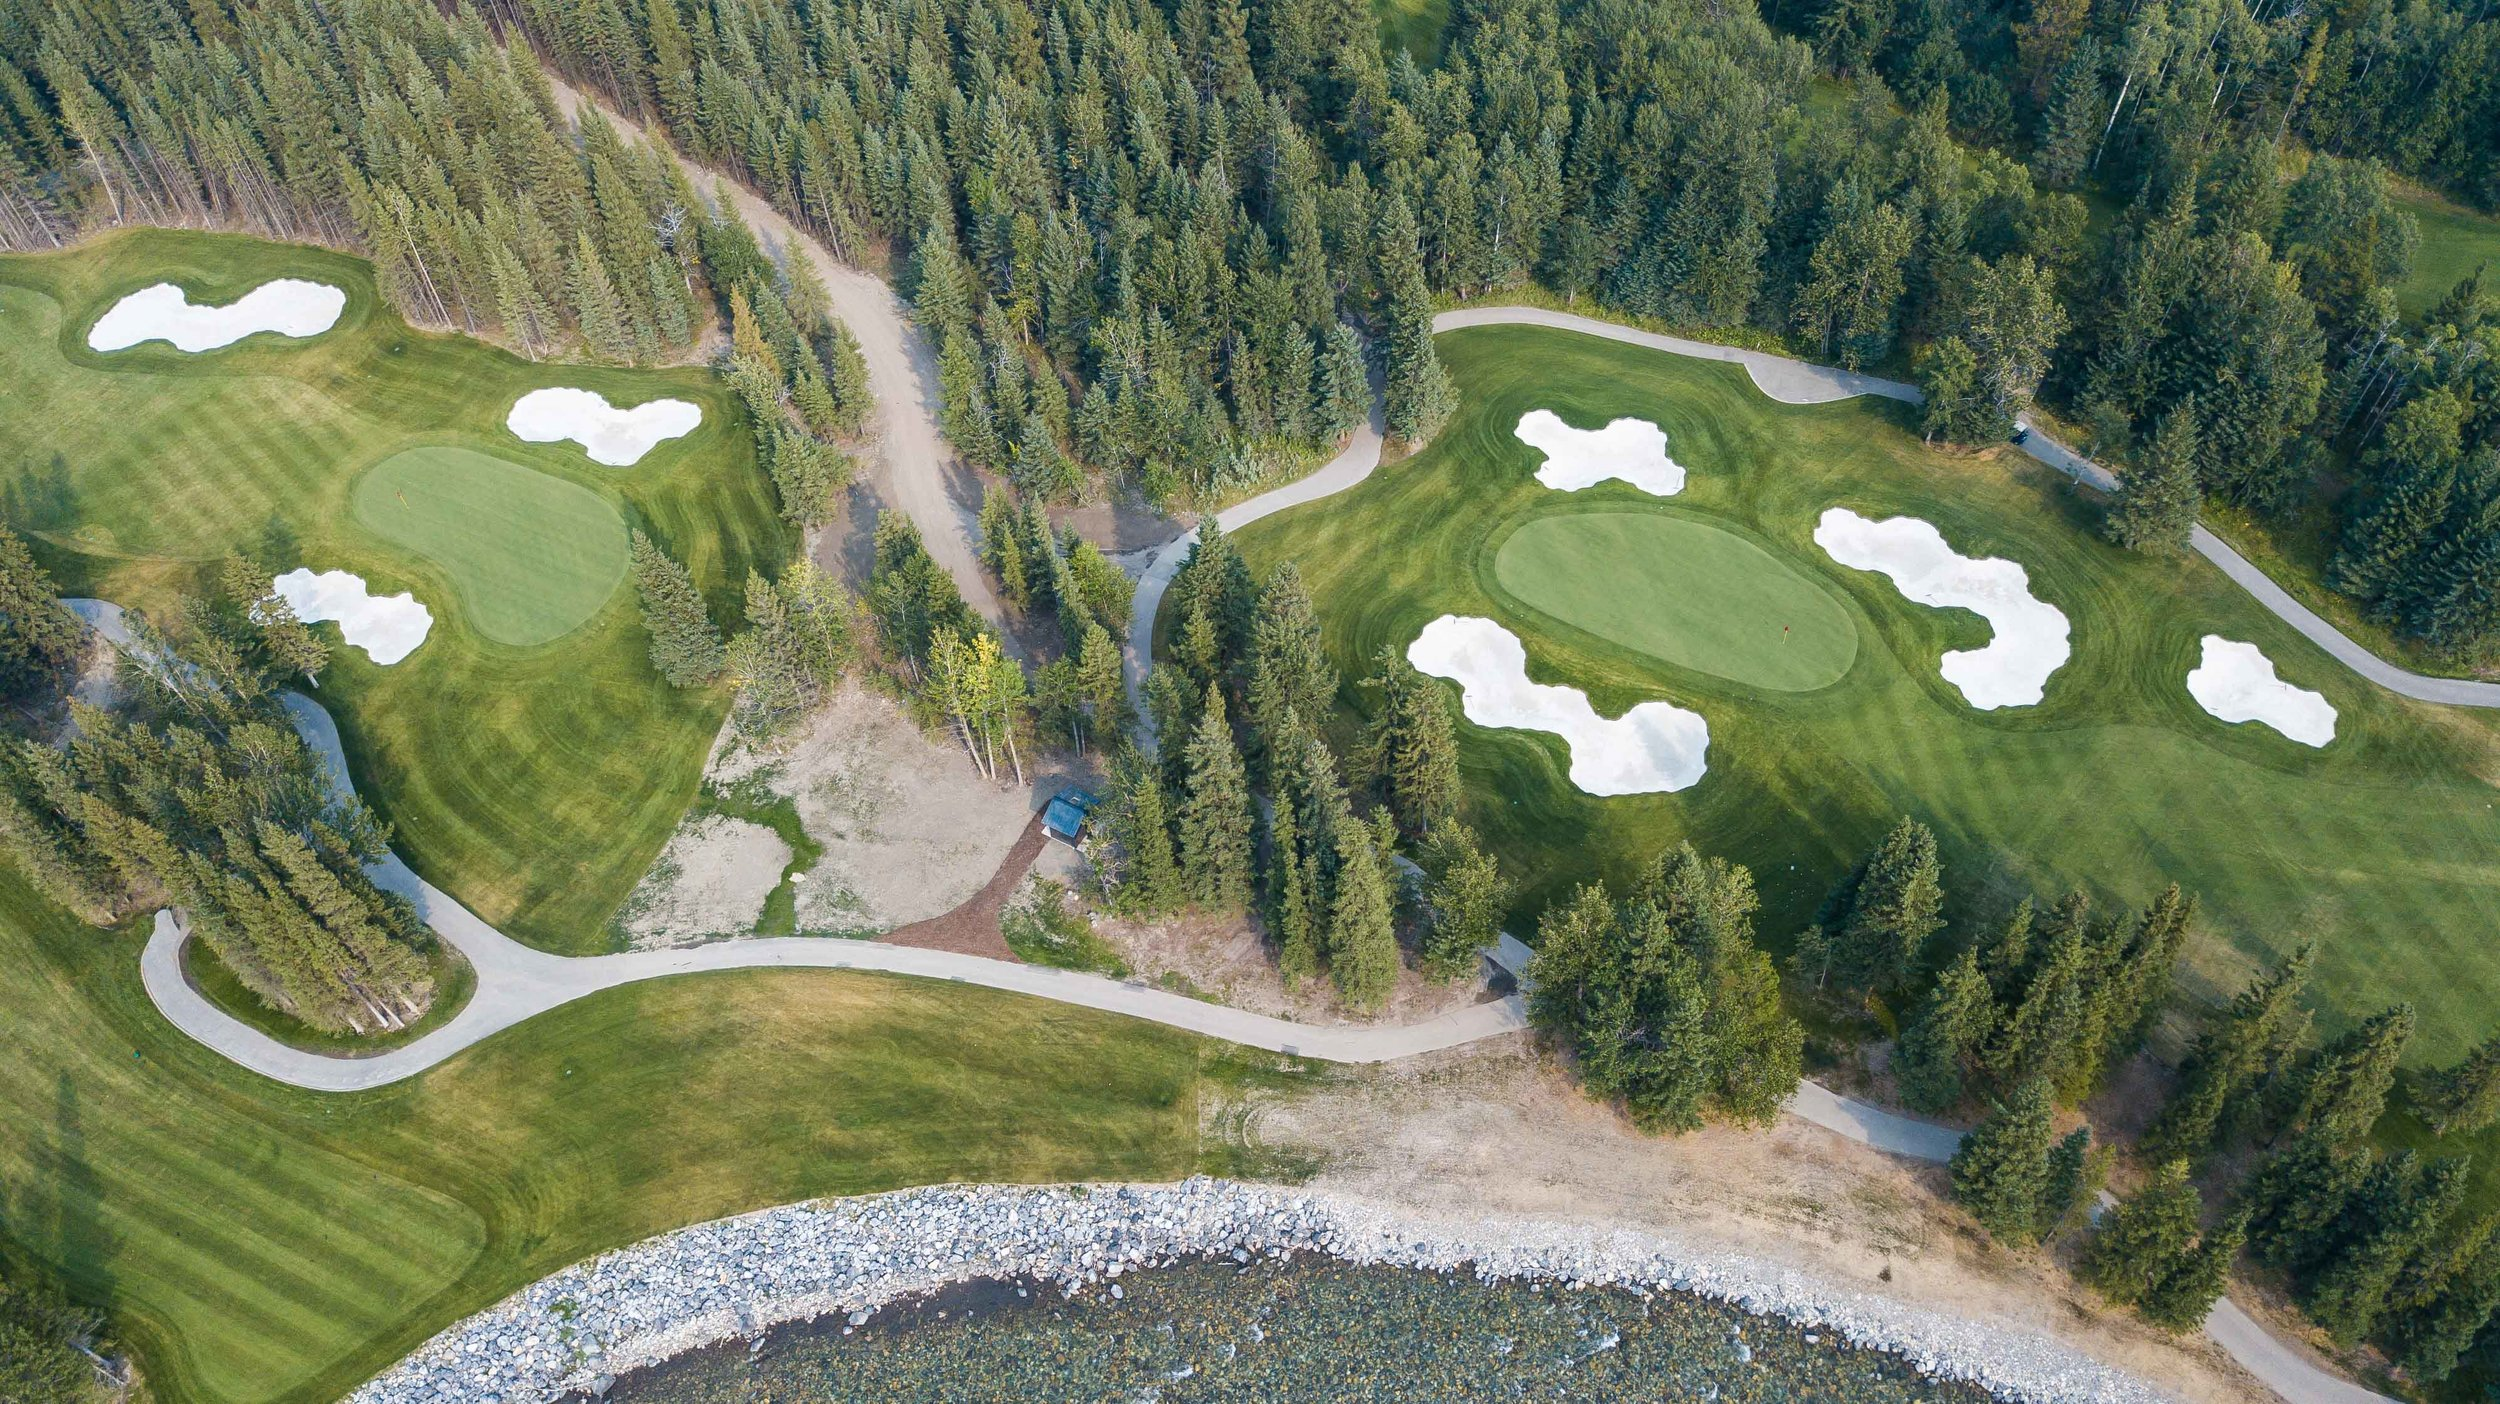 Image courtesy of Robert Trent Drones.